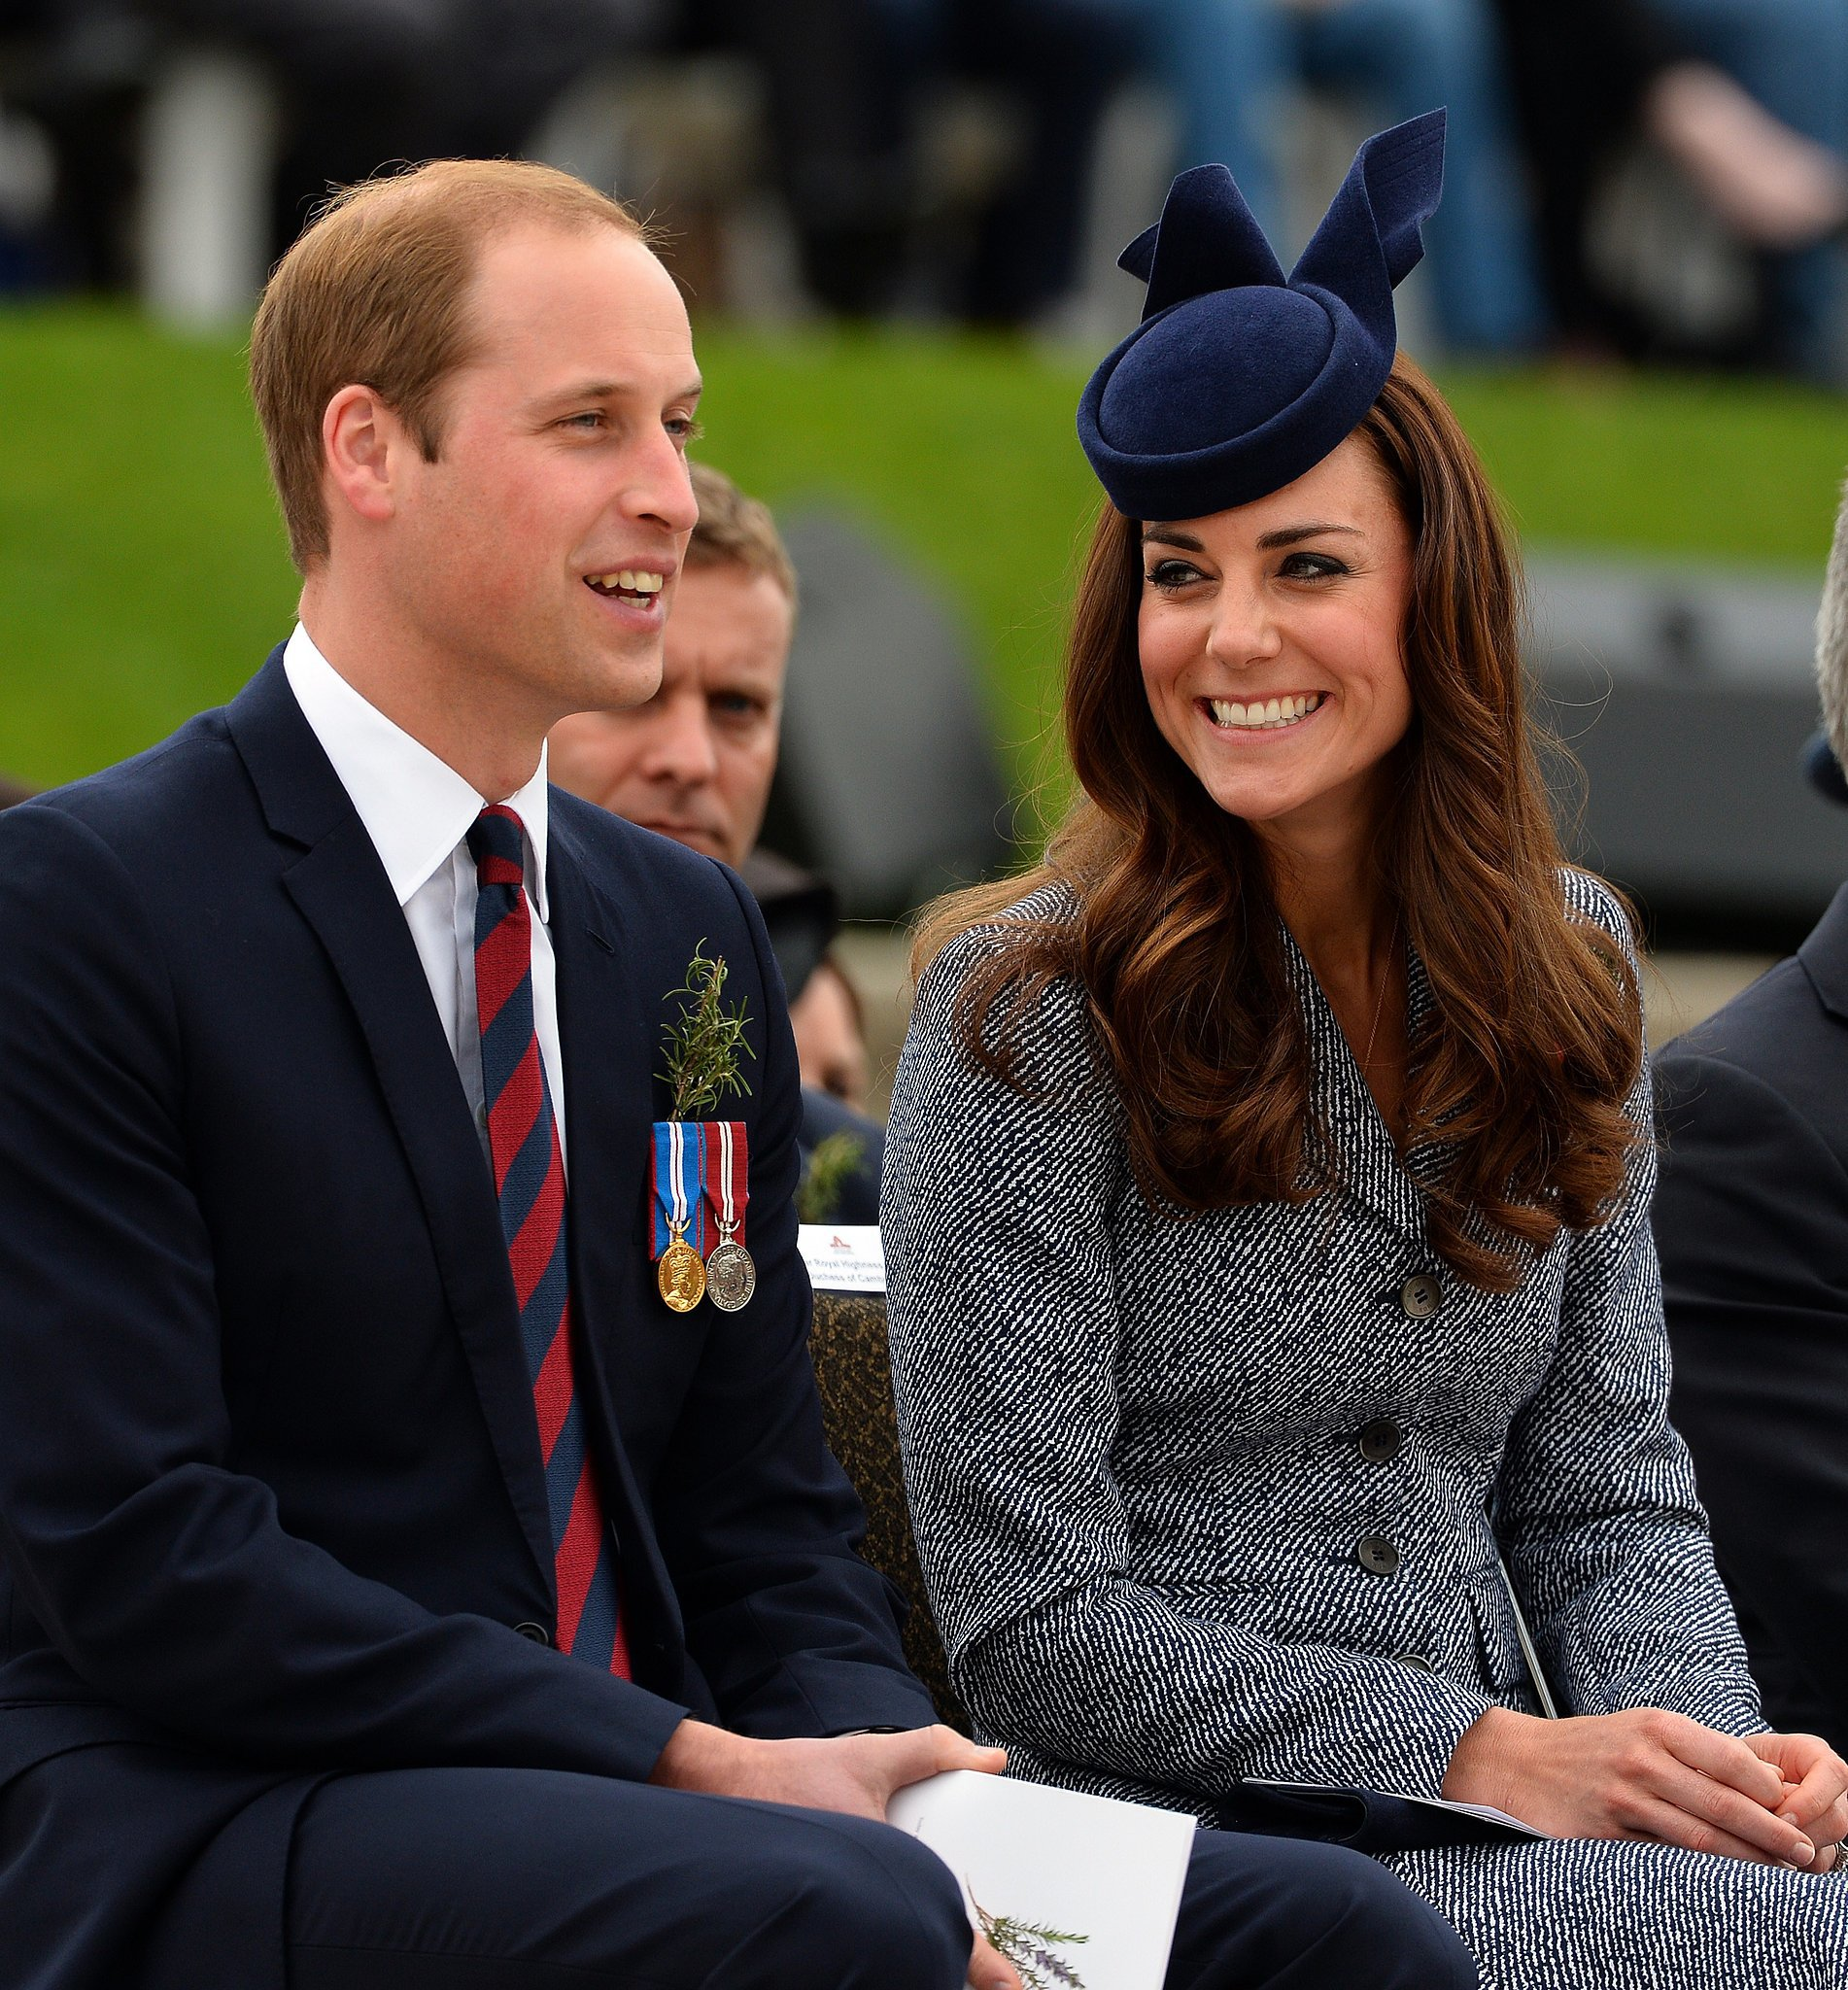 Kate shared a loving glance with William in April 2014 during their tour of Australia.